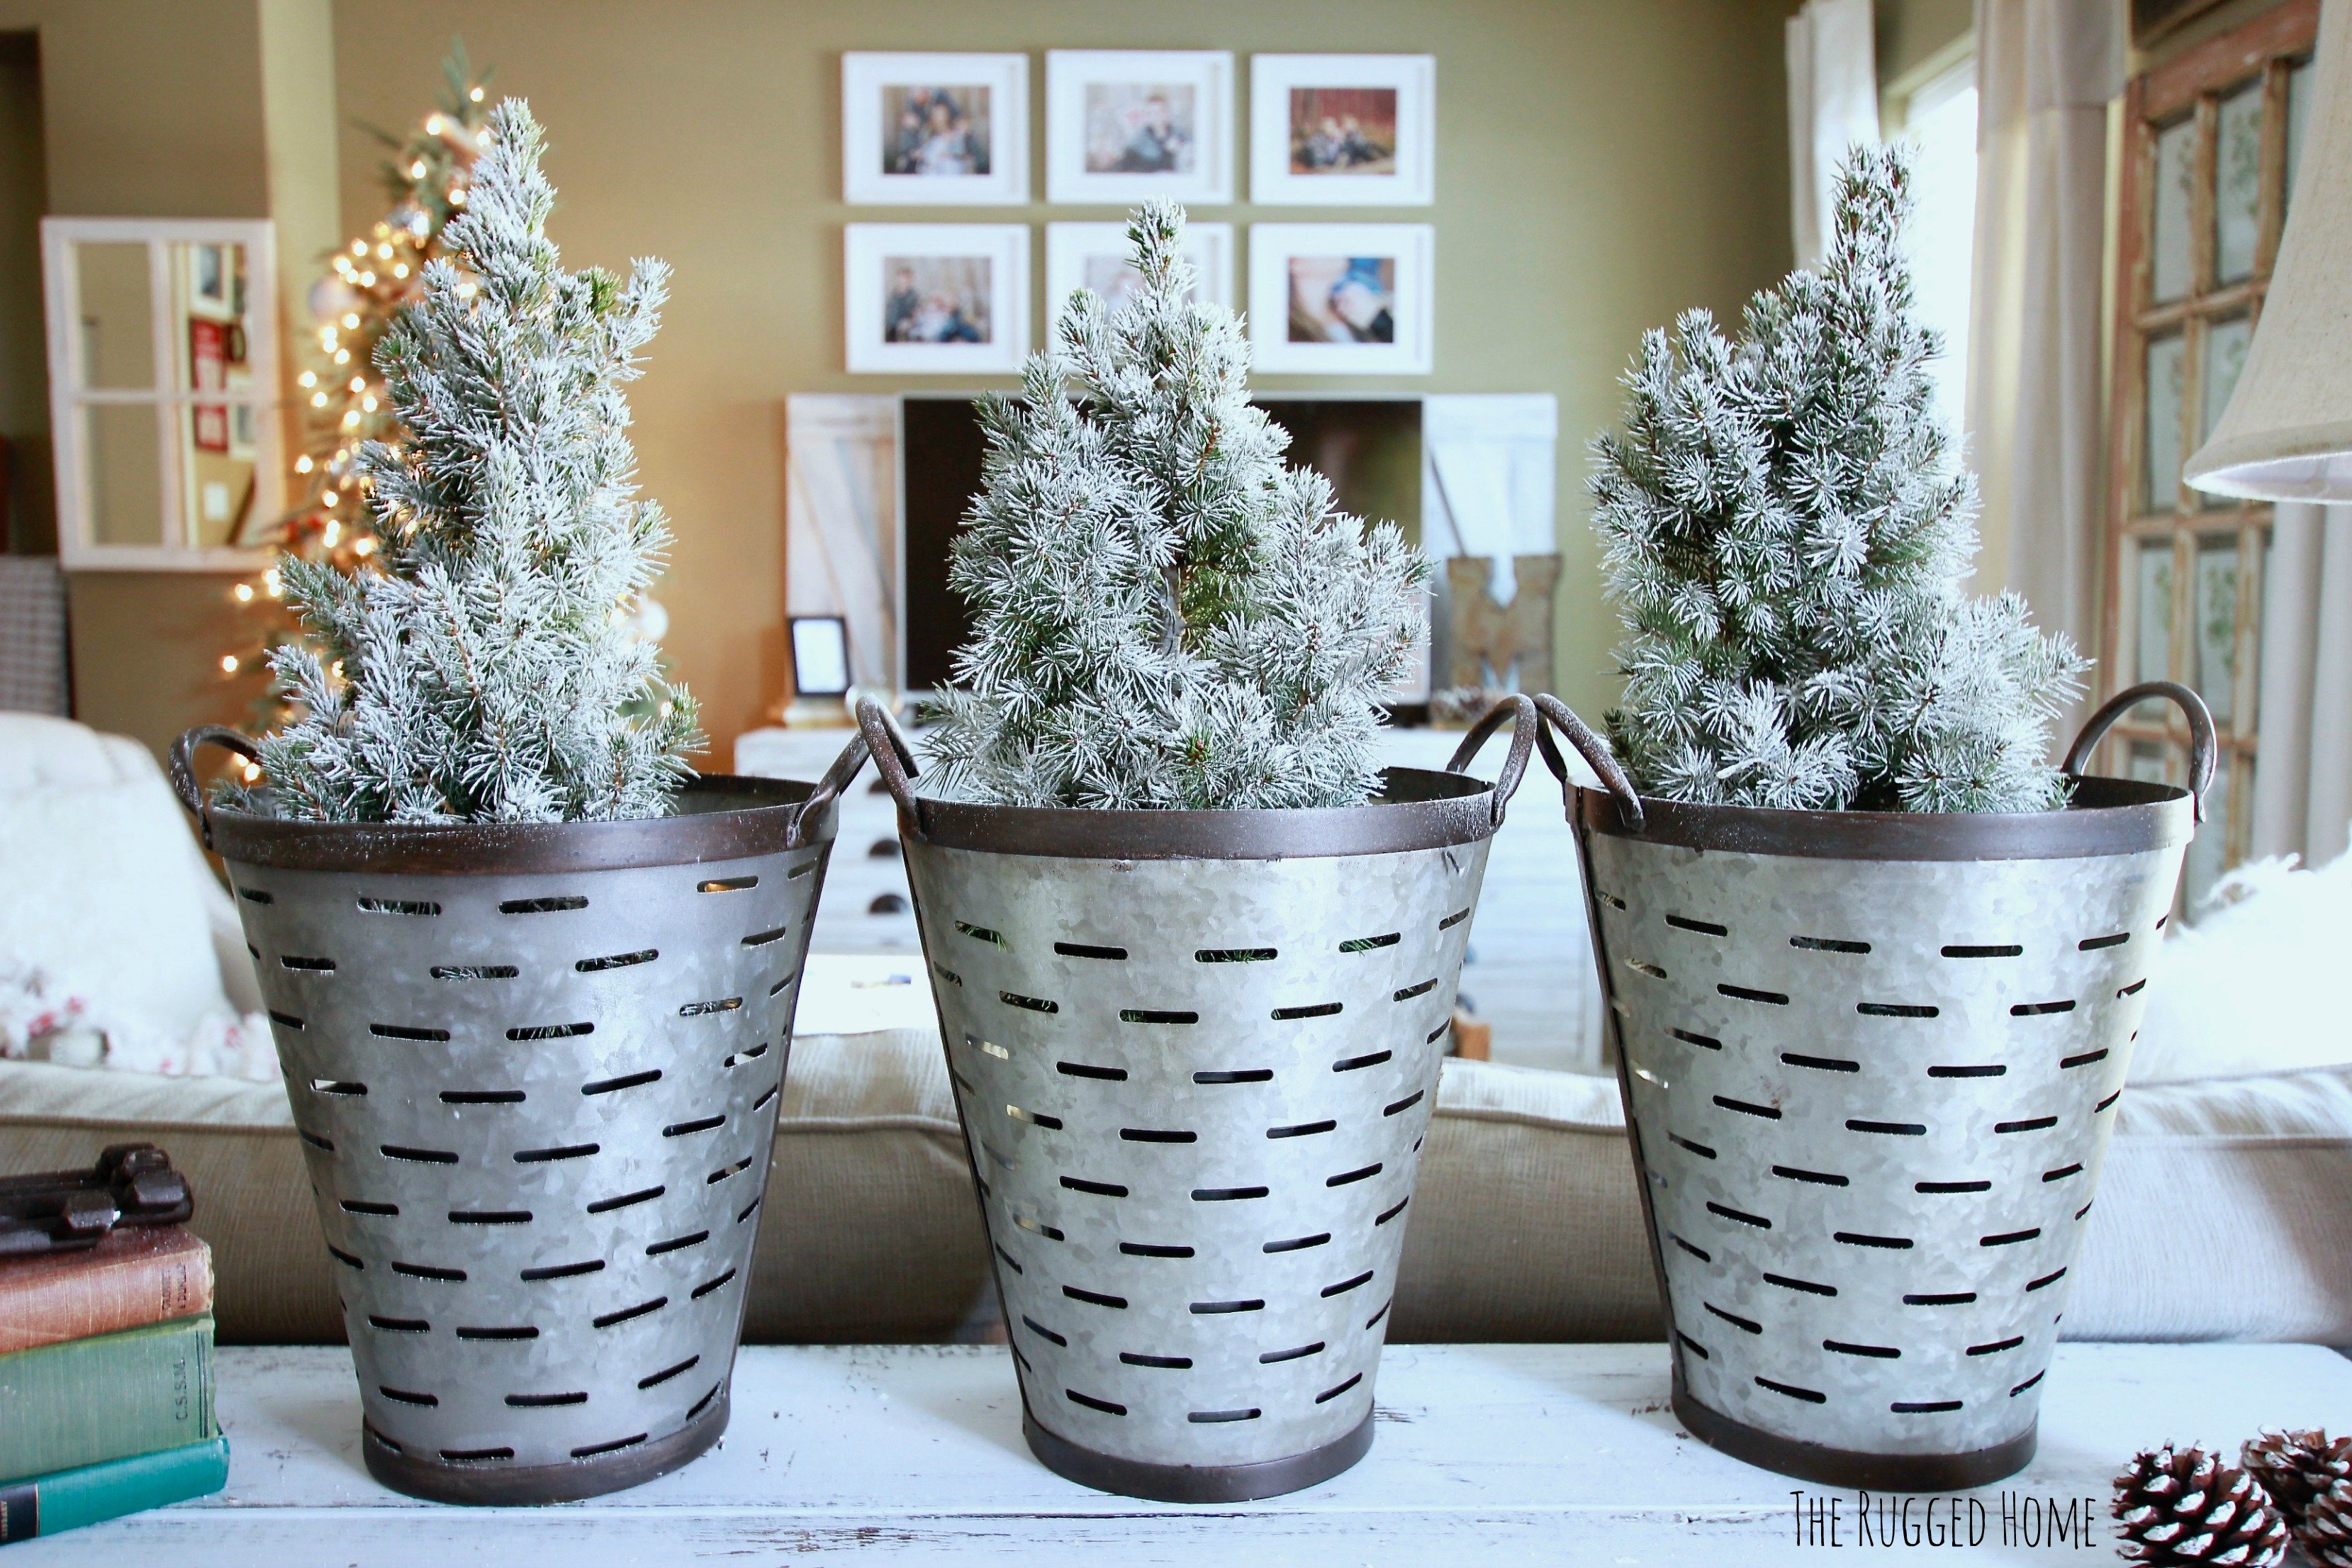 Charlie Brown Christmas Trees in Olive Buckets